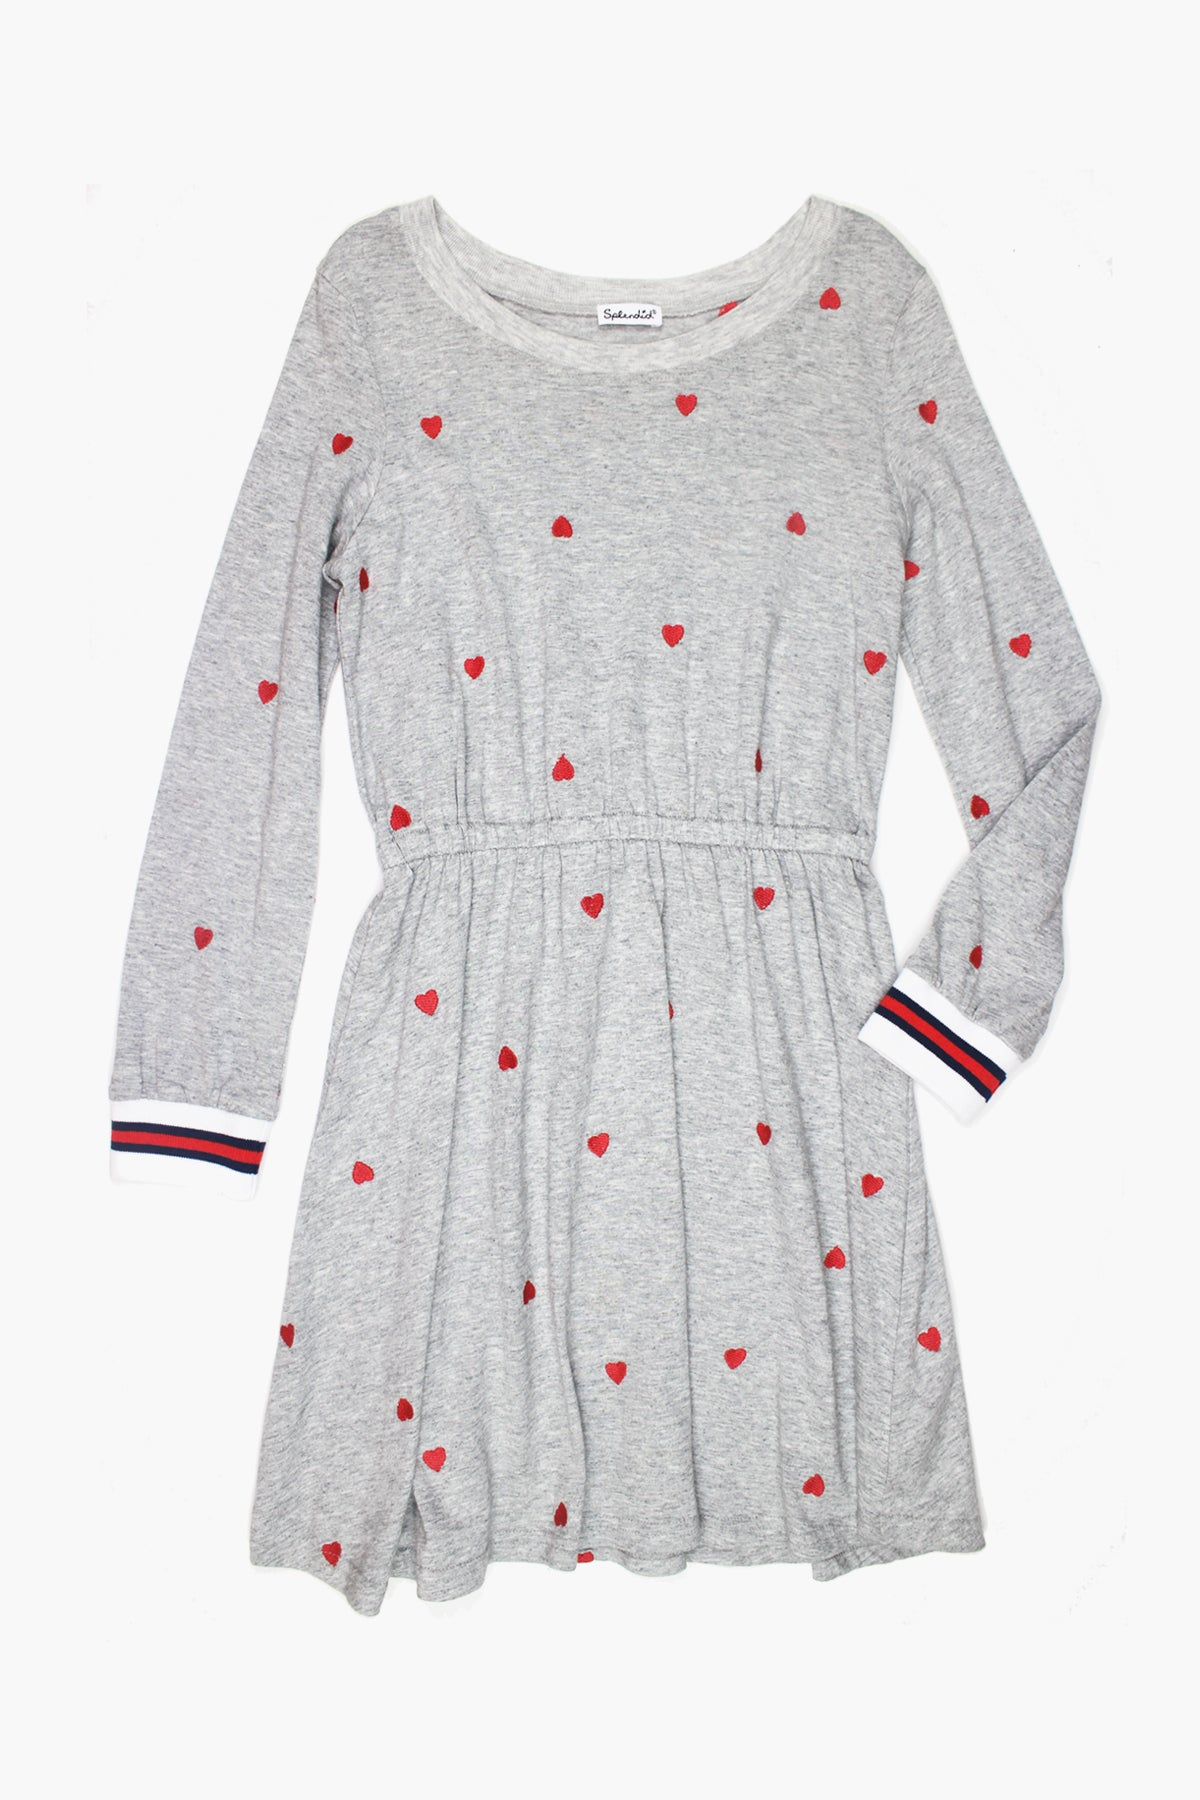 Splendid Schiffli Heart Girls Dress